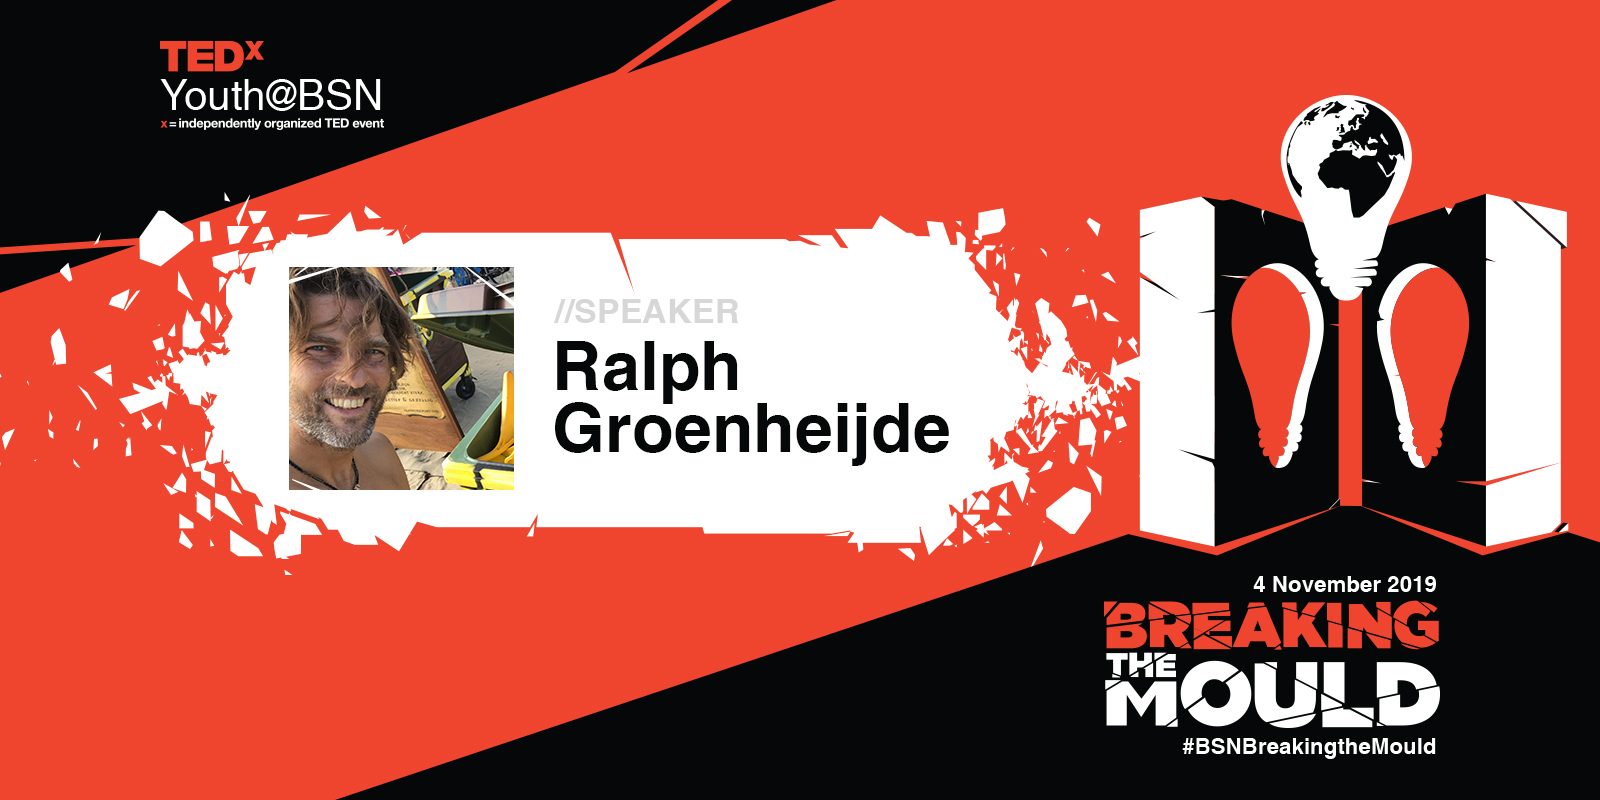 Cleaning up the beach and fun go hand in hand | Ralph Groenheijde | TEDxYouth@BSN Speaker